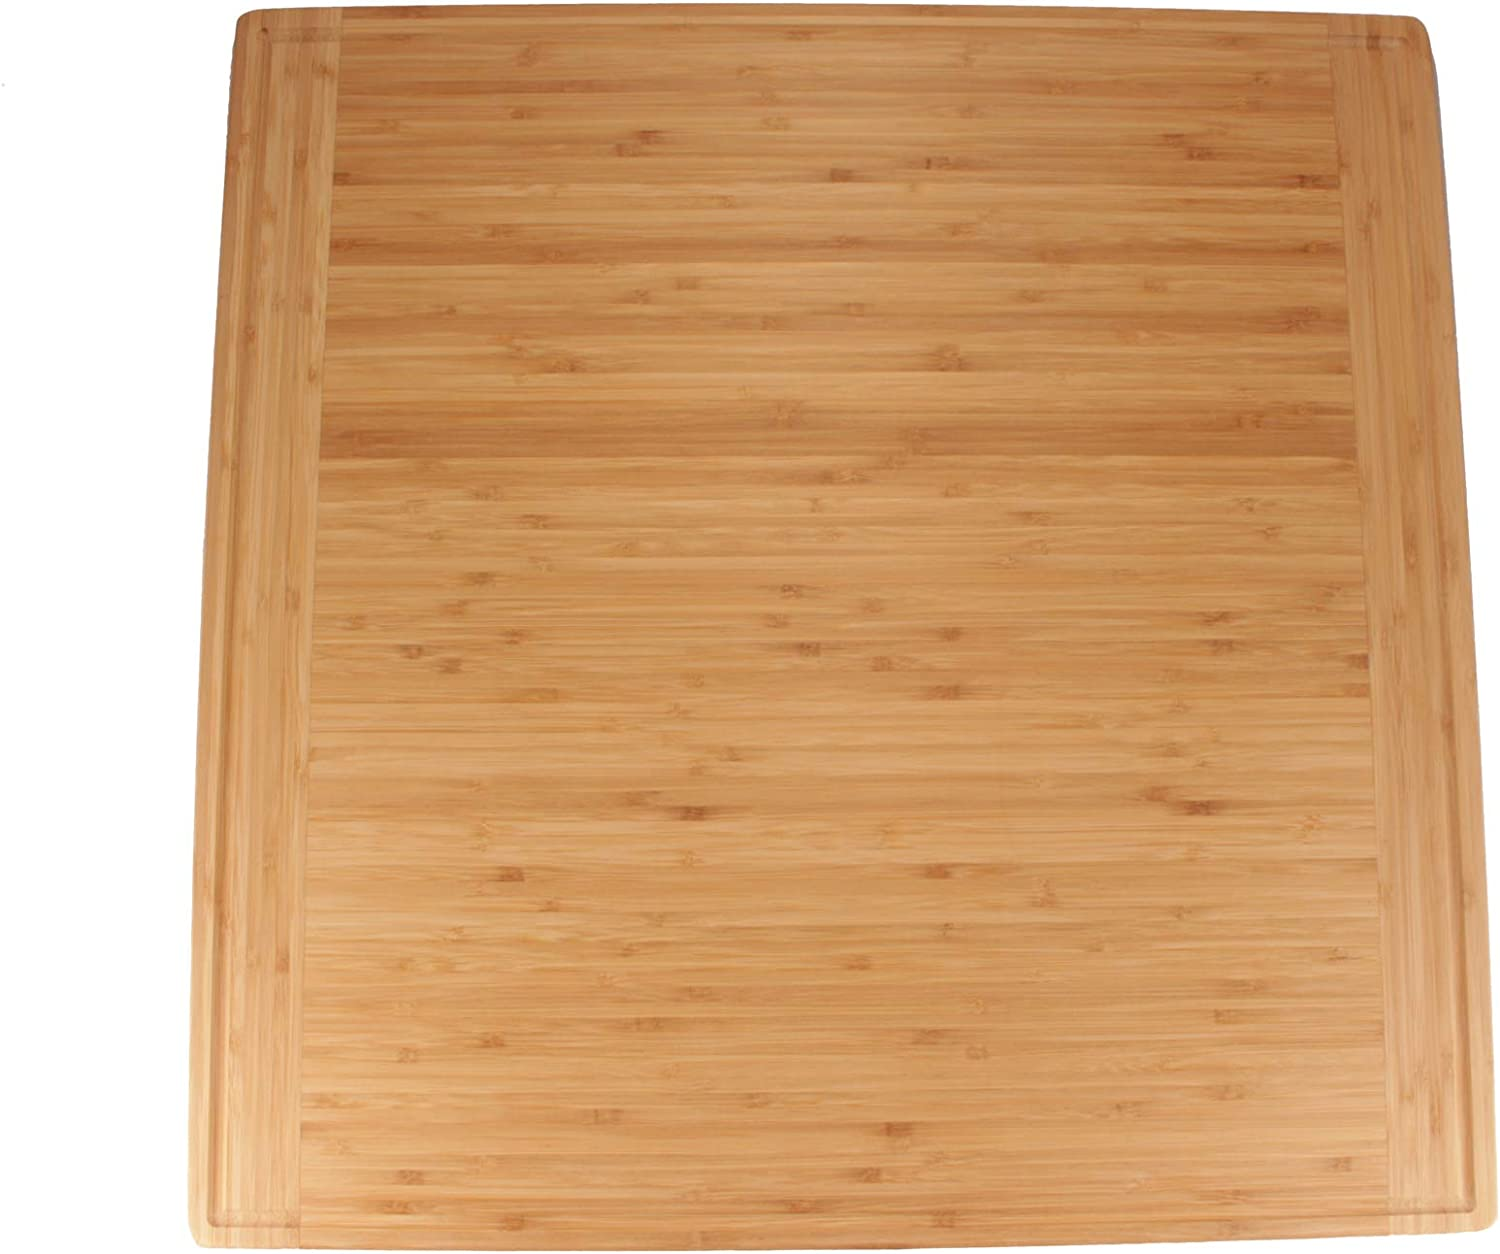 "BambooMN Universal Premium Pull Out Cutting Boards - Under Counter Replacement - Designed To Fit Standard Slots Heavy Duty Kitchen Board with Juice Groove - 22"" x 22"" x 0.75"" - 1 Piece"